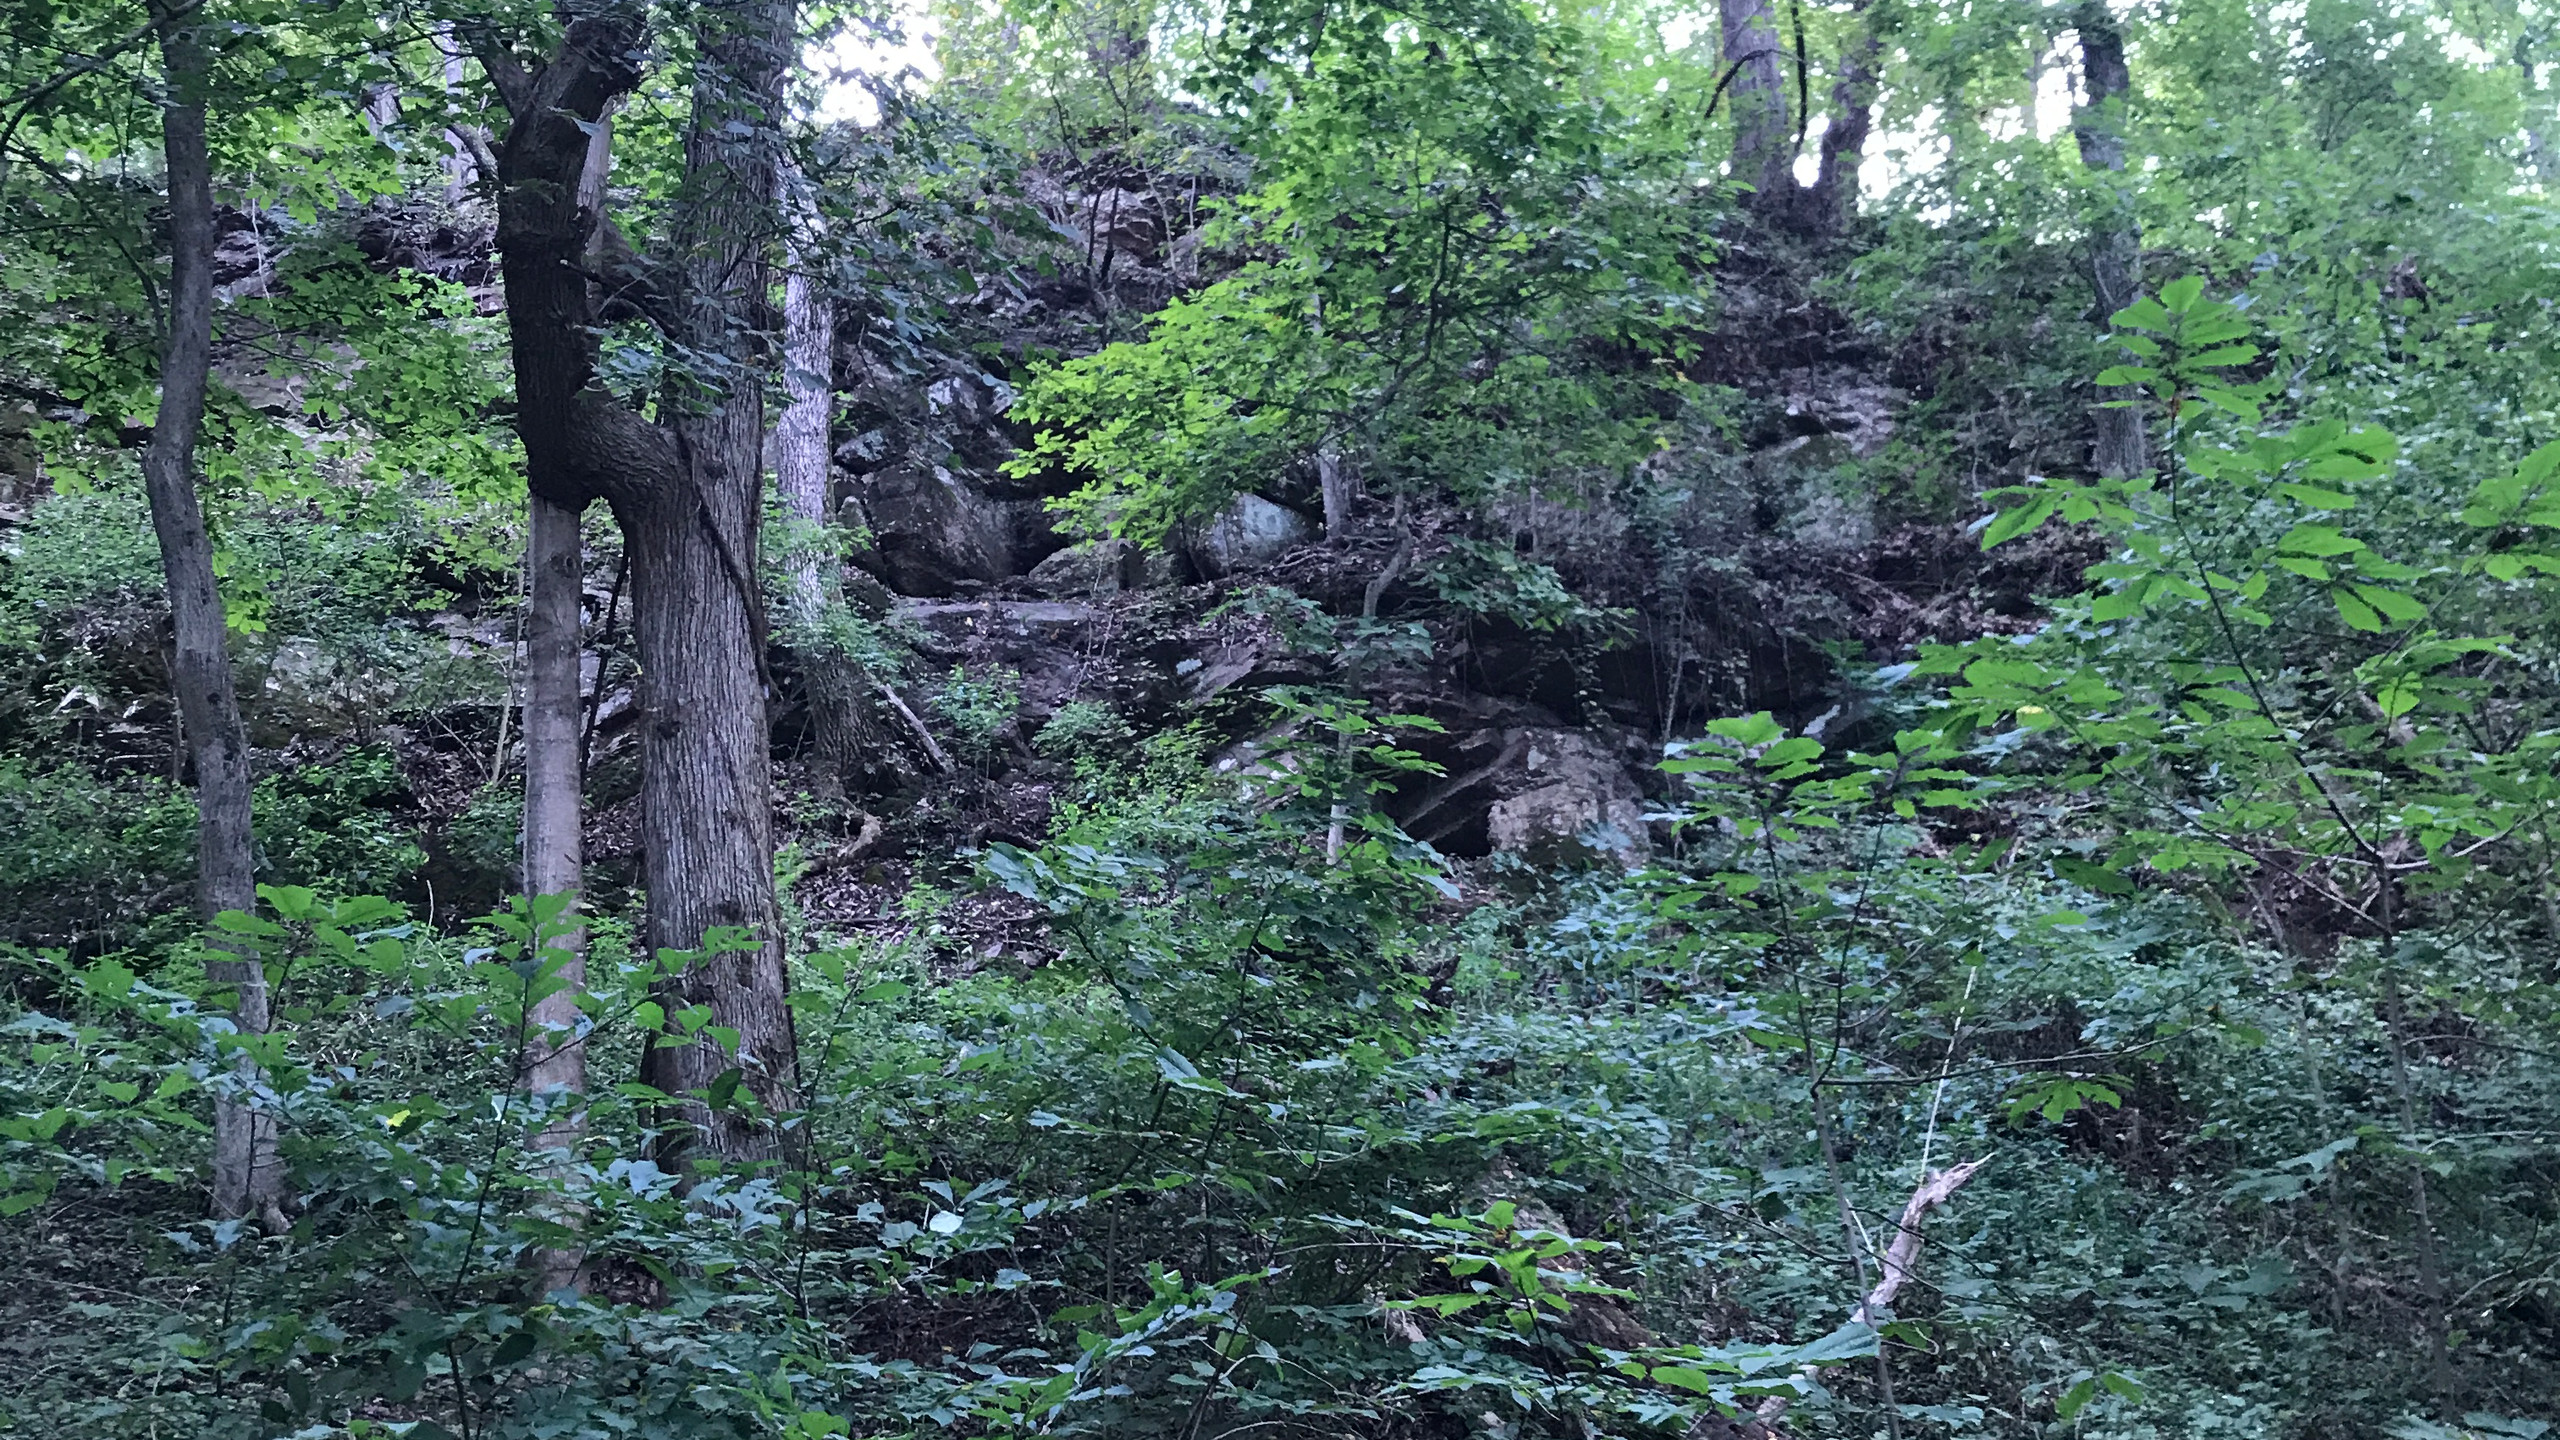 The Bluffs from the Flood Plain